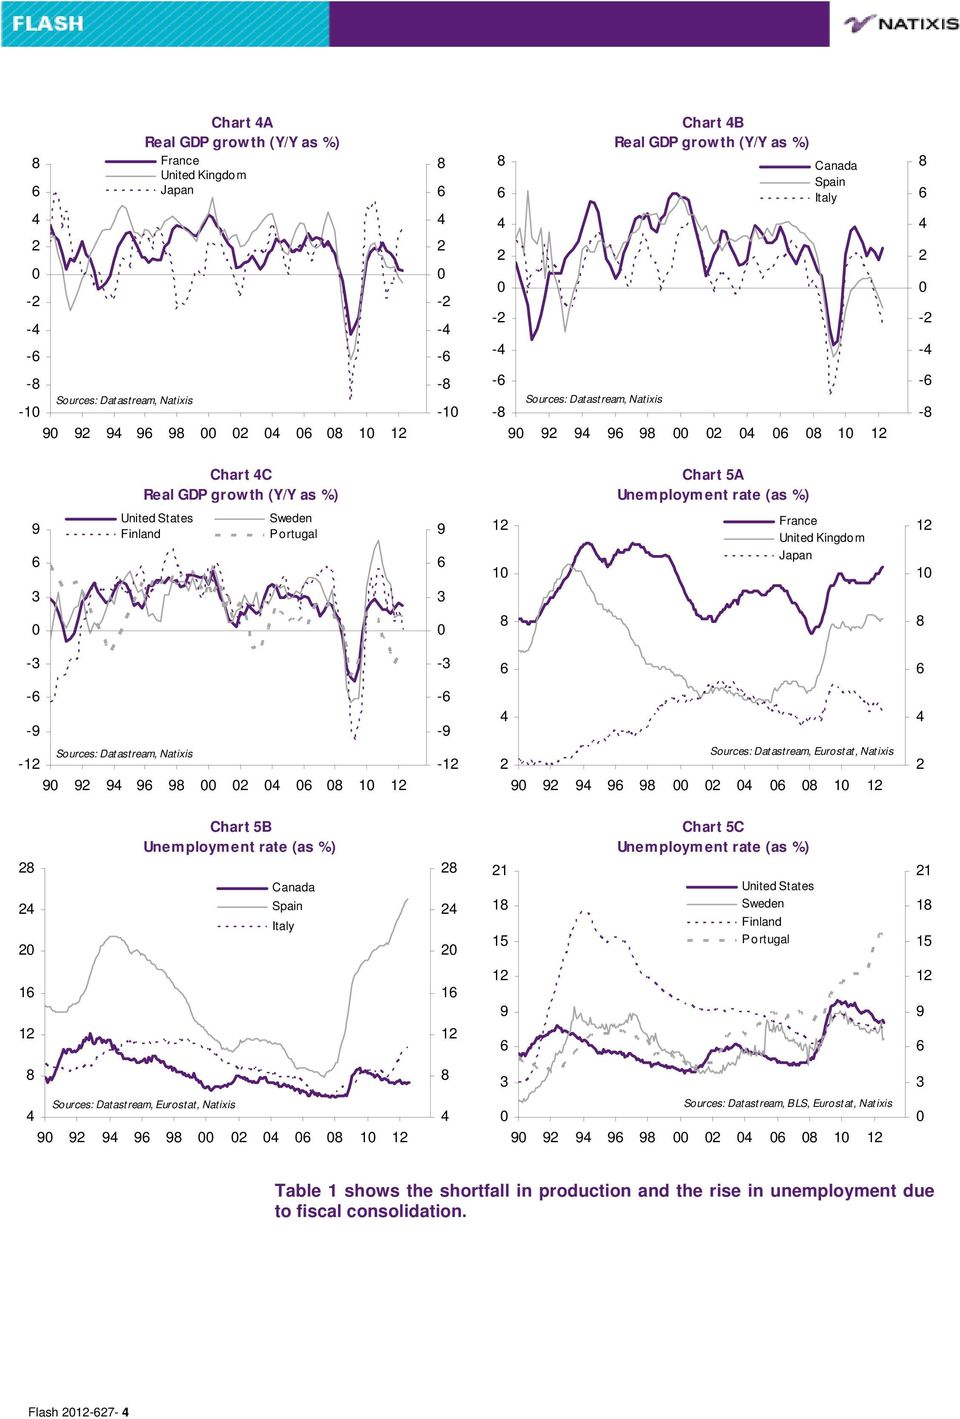 Unemployment rate (as %) 1 1 1 Chart C Unemployment rate (as %) 1 1 1 1 1 1 1 1 1 1 1 Sources: Datastream, BLS,